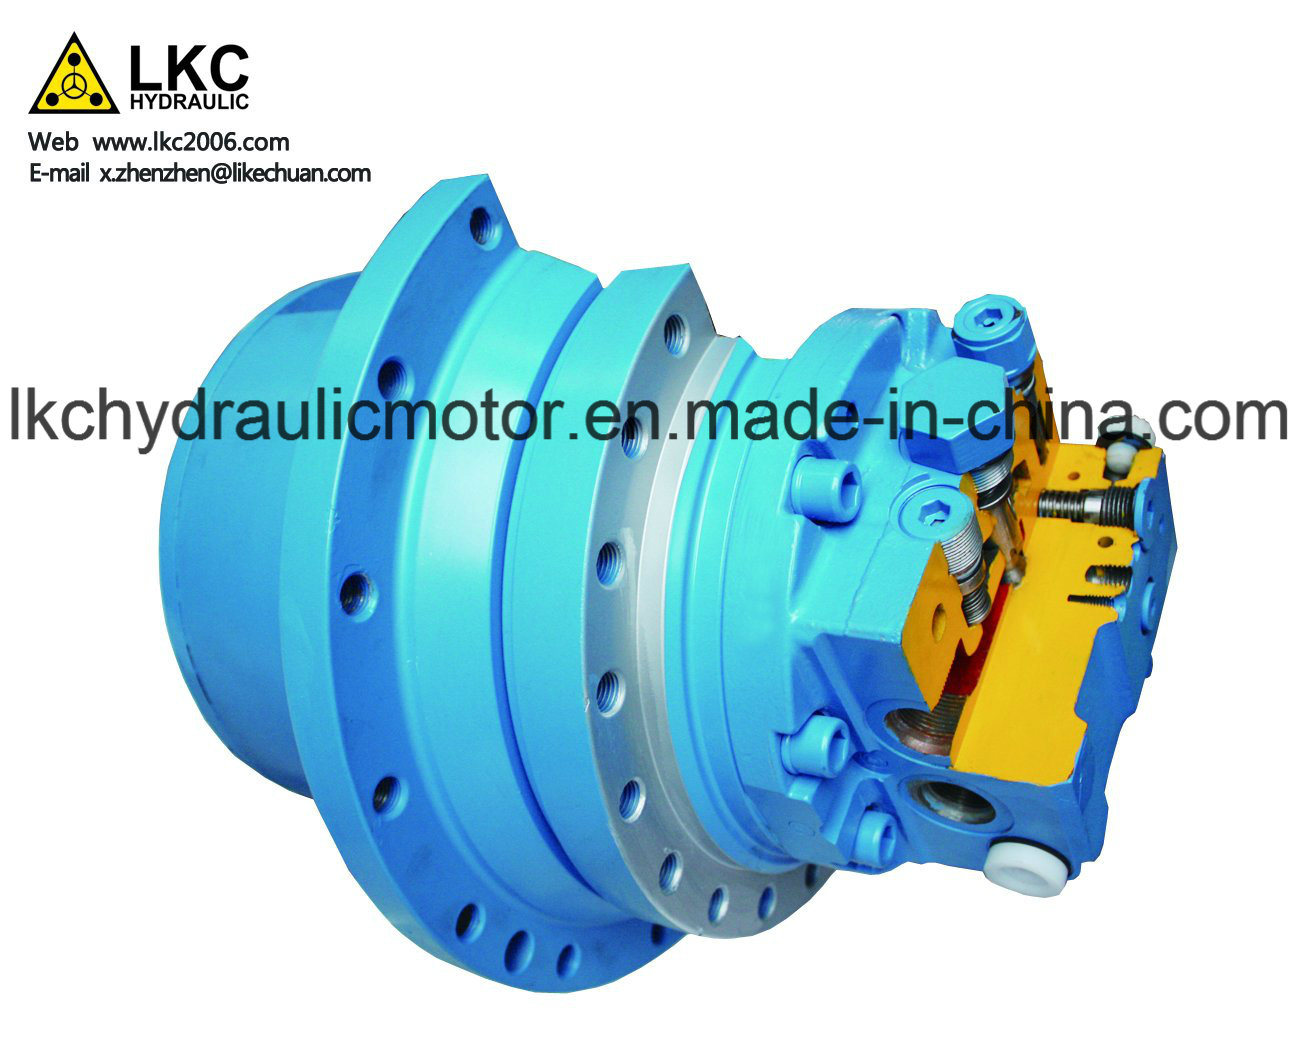 Kyb Final Drive Hydraulic Travel Motor for 1.5t~2.5t Yammar Crawler Excavator